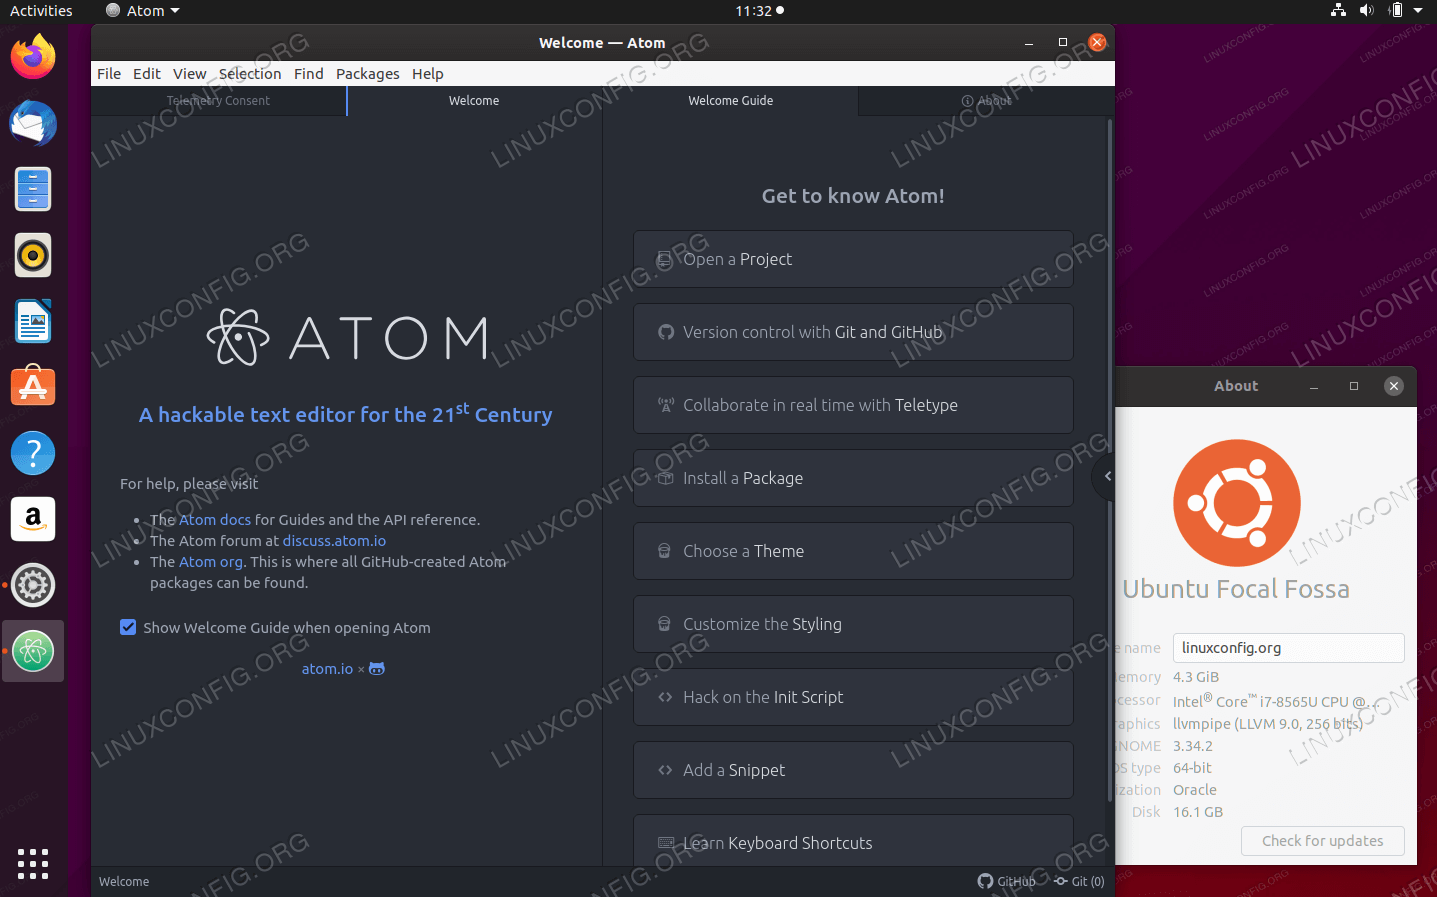 Atom Text Editor on Ubuntu 20.04 Focal Fossa Linux